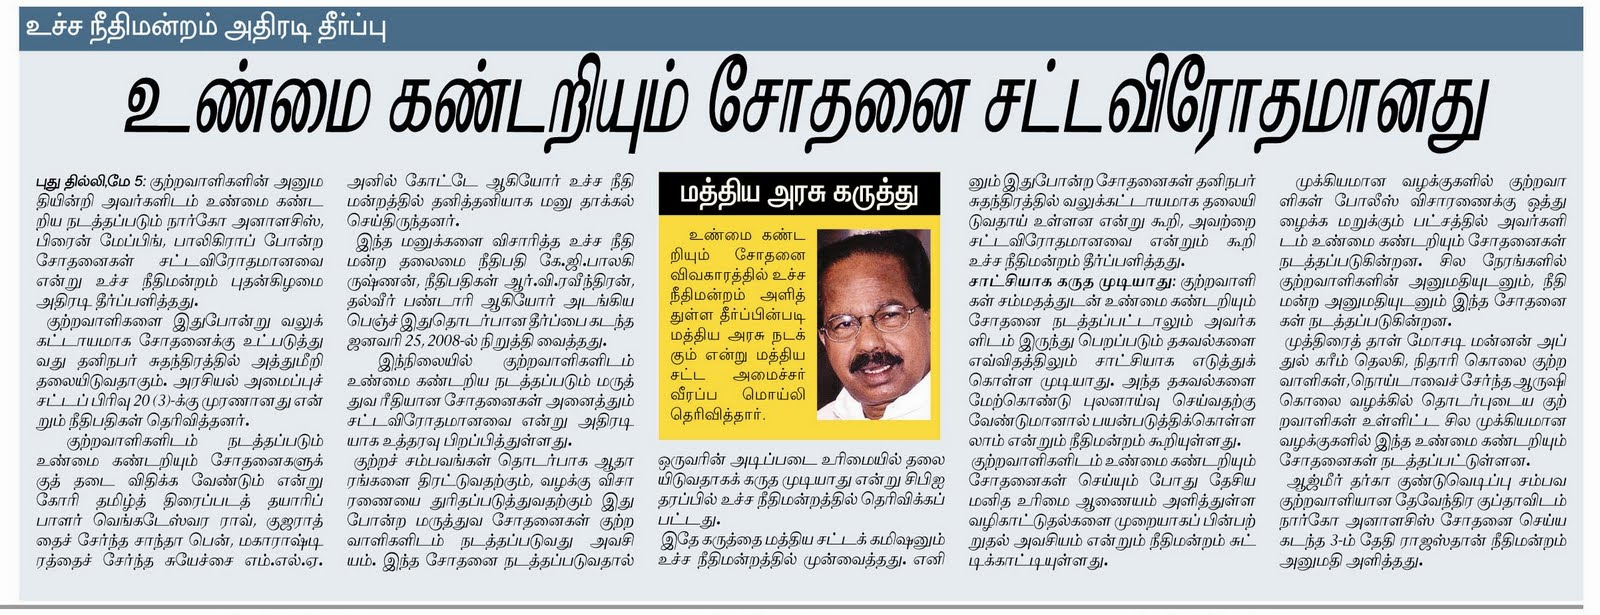 Court Verdict Published in Dailies: Use of narco analysis, brain